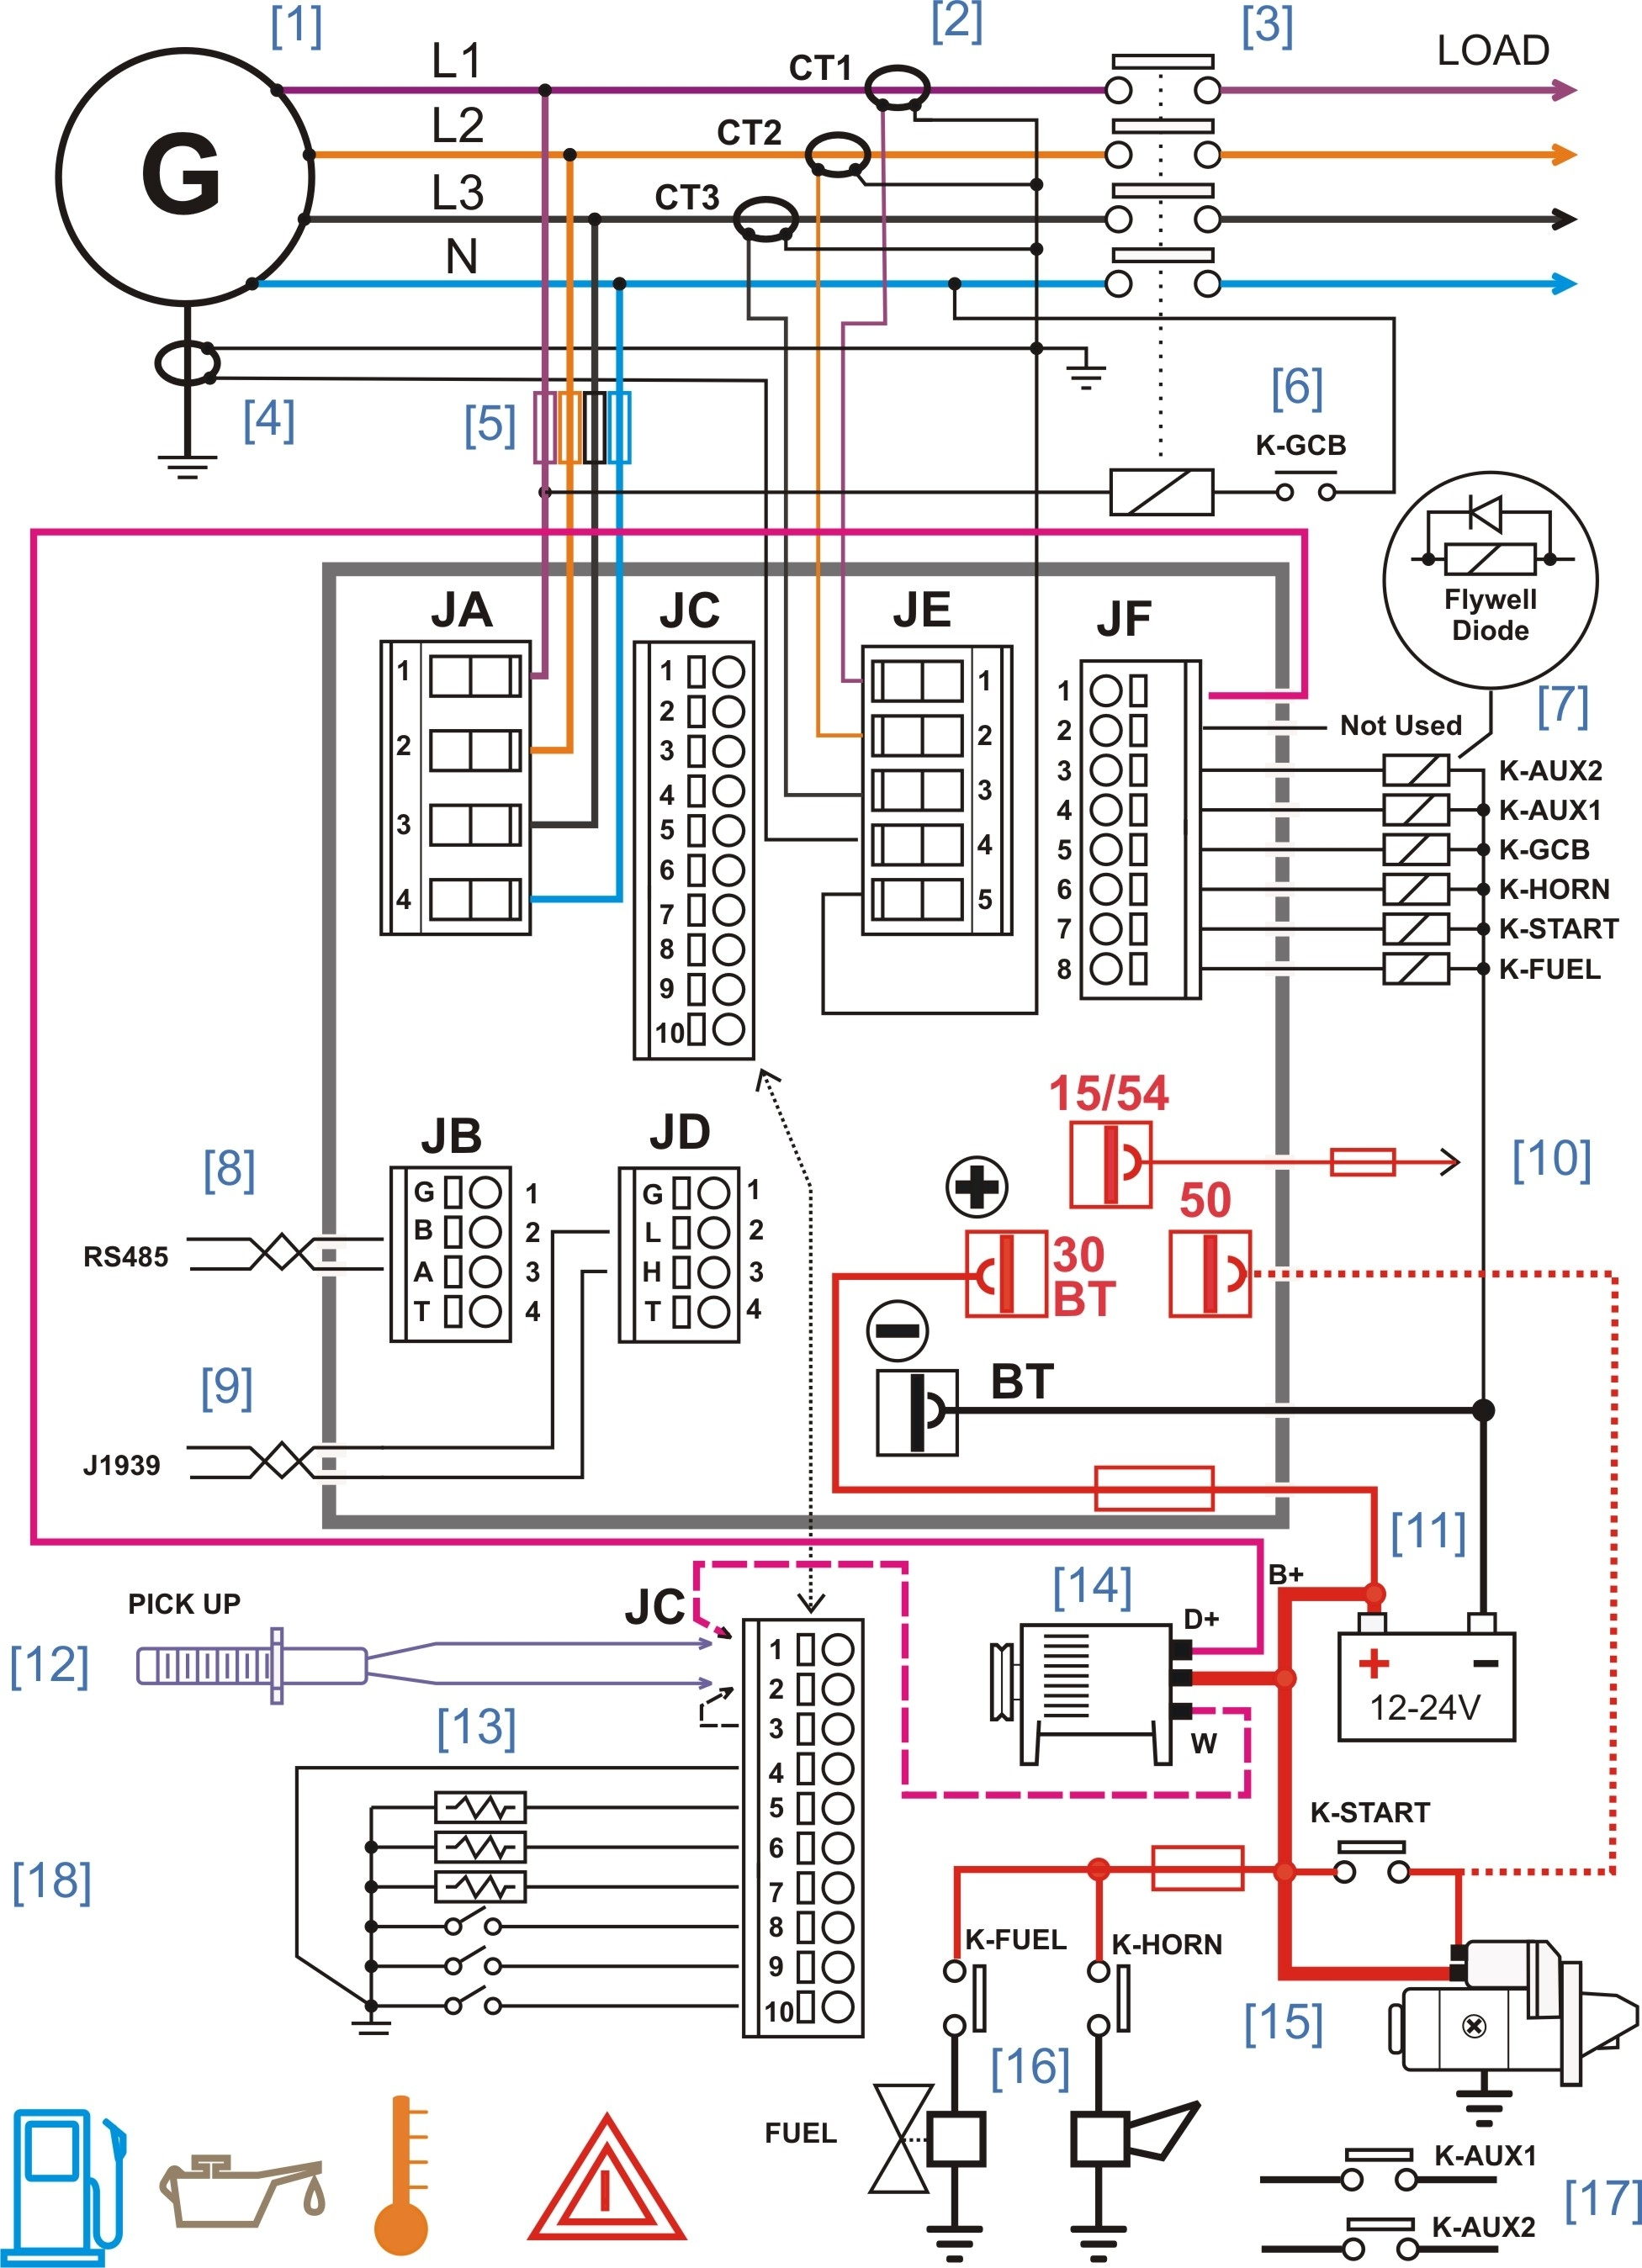 diesel generator control panel wiring diagram genset controller inside ac electrical wiring diagrams generator service panel wiring diagram wiring diagram simonand residential power panel wiring diagram at crackthecode.co